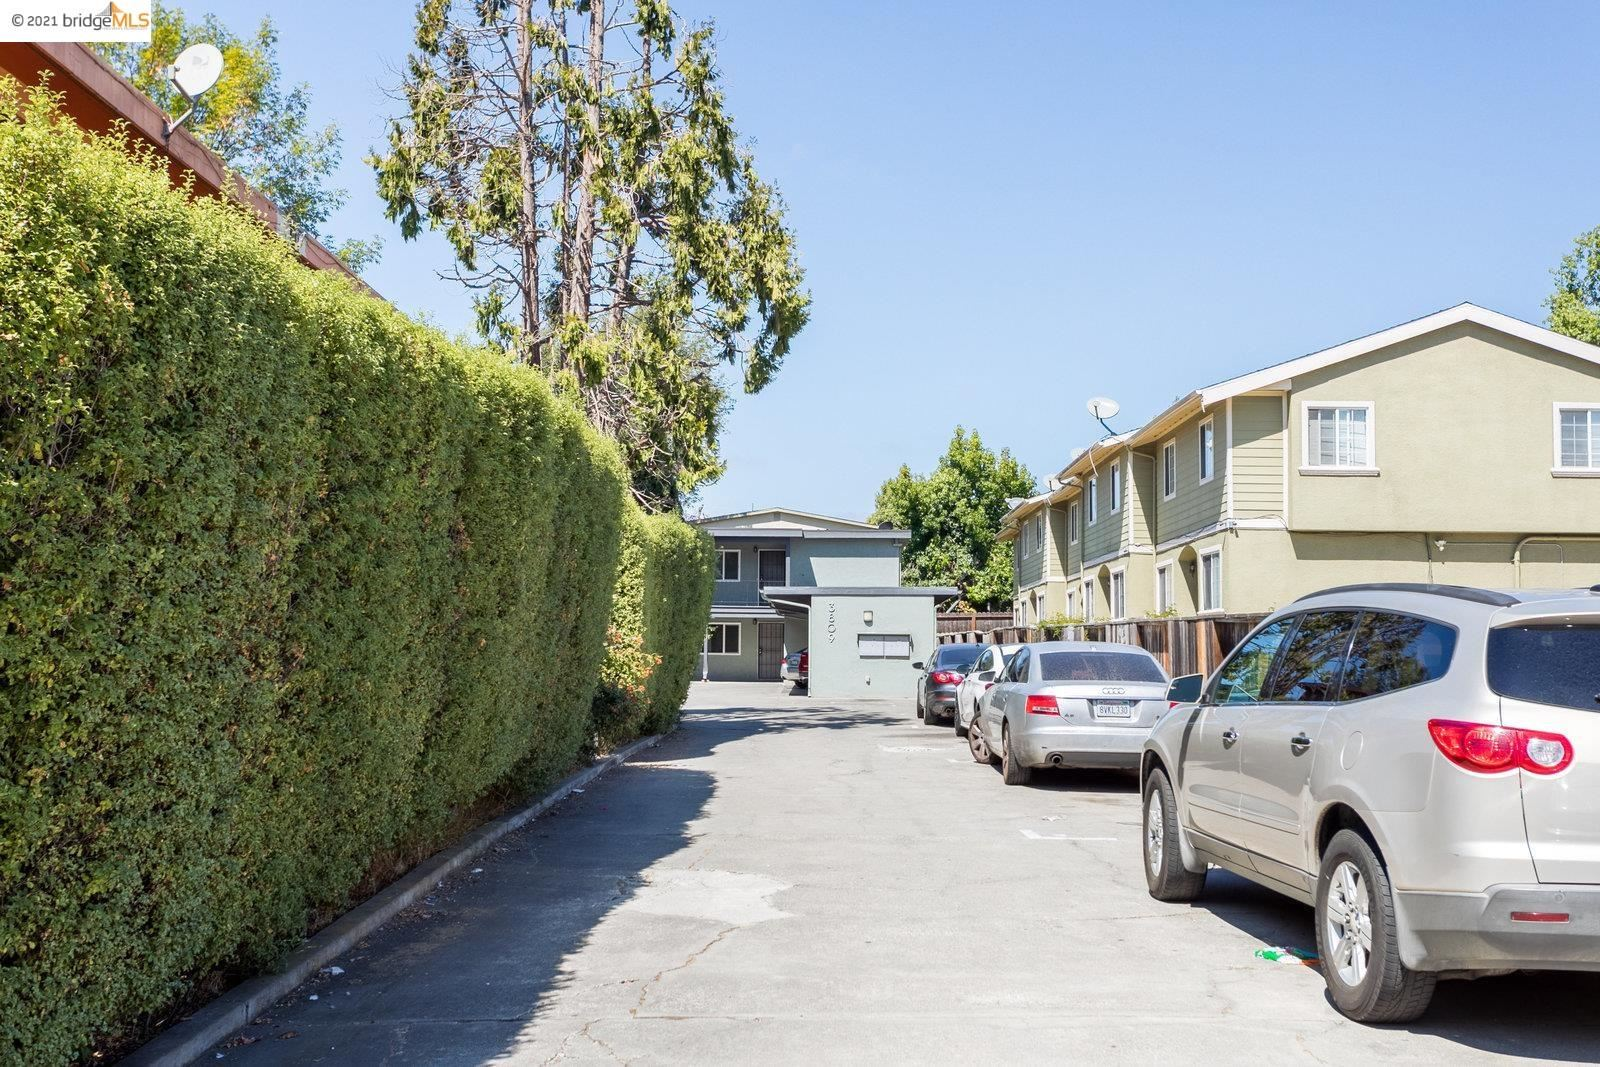 Photo of 3809 Maybelle Avenue, OAKLAND, CA 94619-2136 (MLS # 40967171)